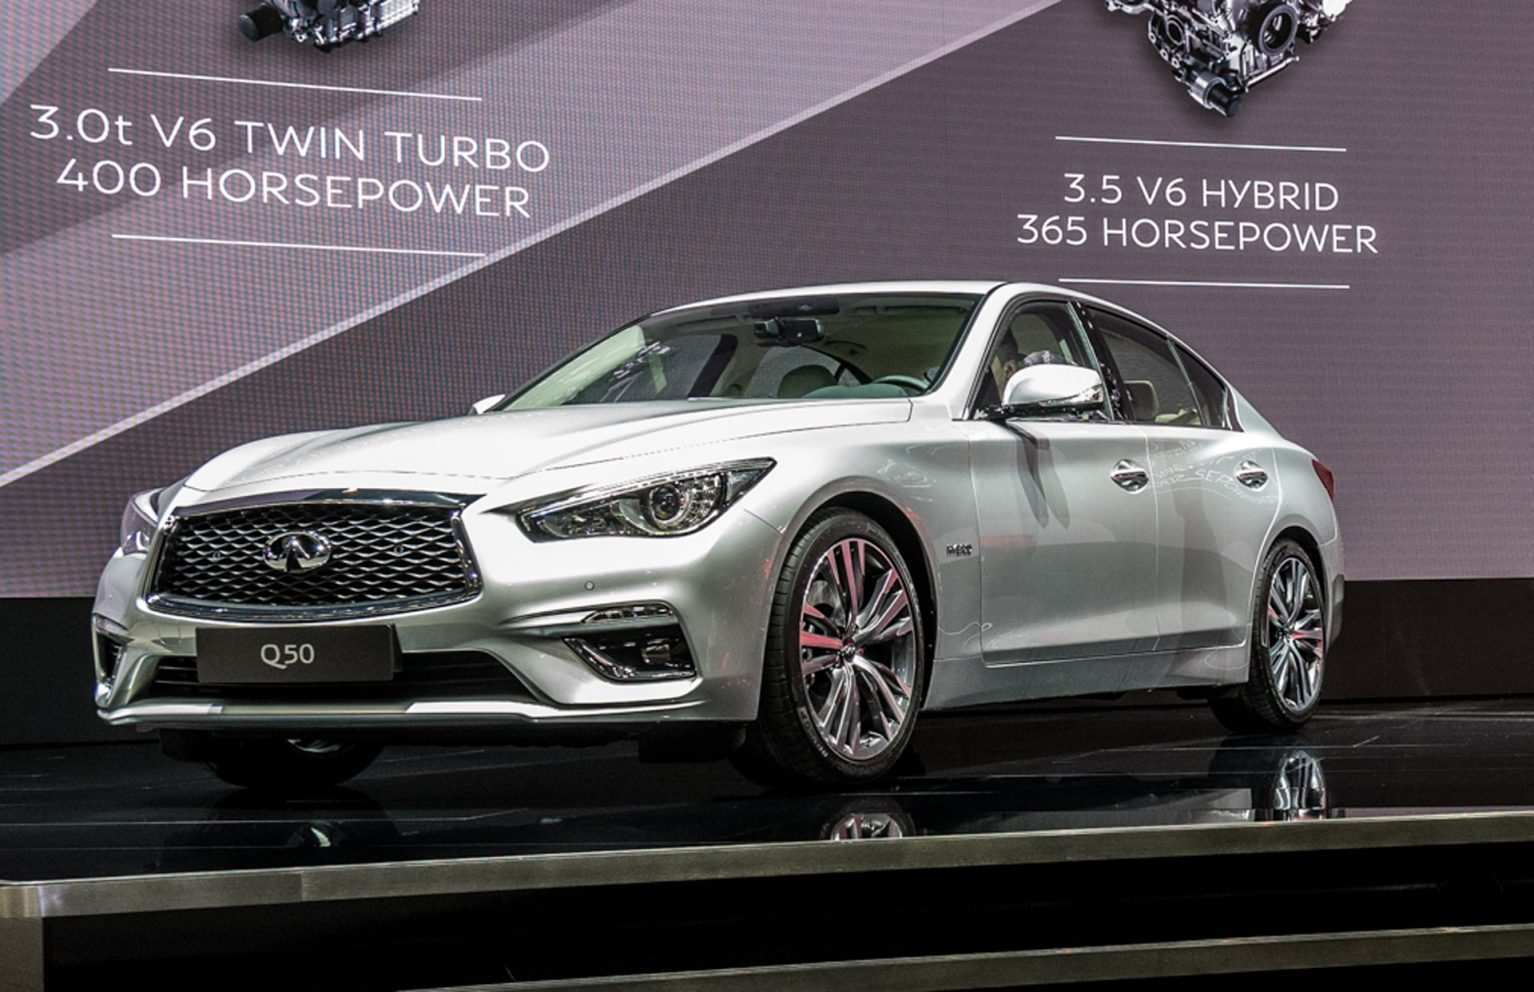 52 New 2019 Infiniti Q50 Redesign Spesification by 2019 Infiniti Q50 Redesign